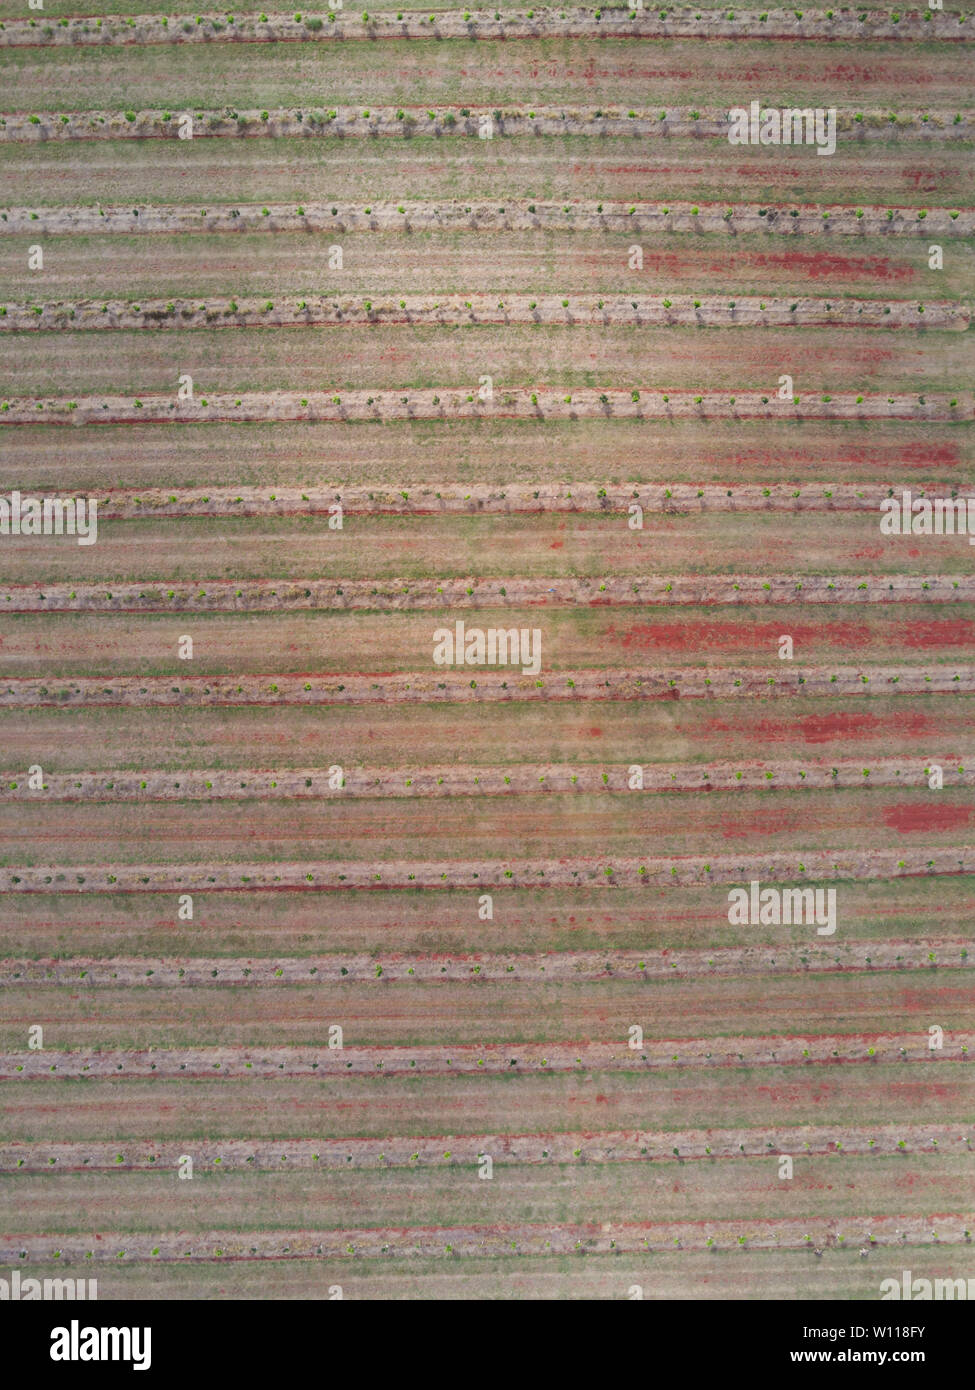 Aerial nadir view of young commercial macadamia nut trees in an orchard near Childers Queensland Australia - Stock Image